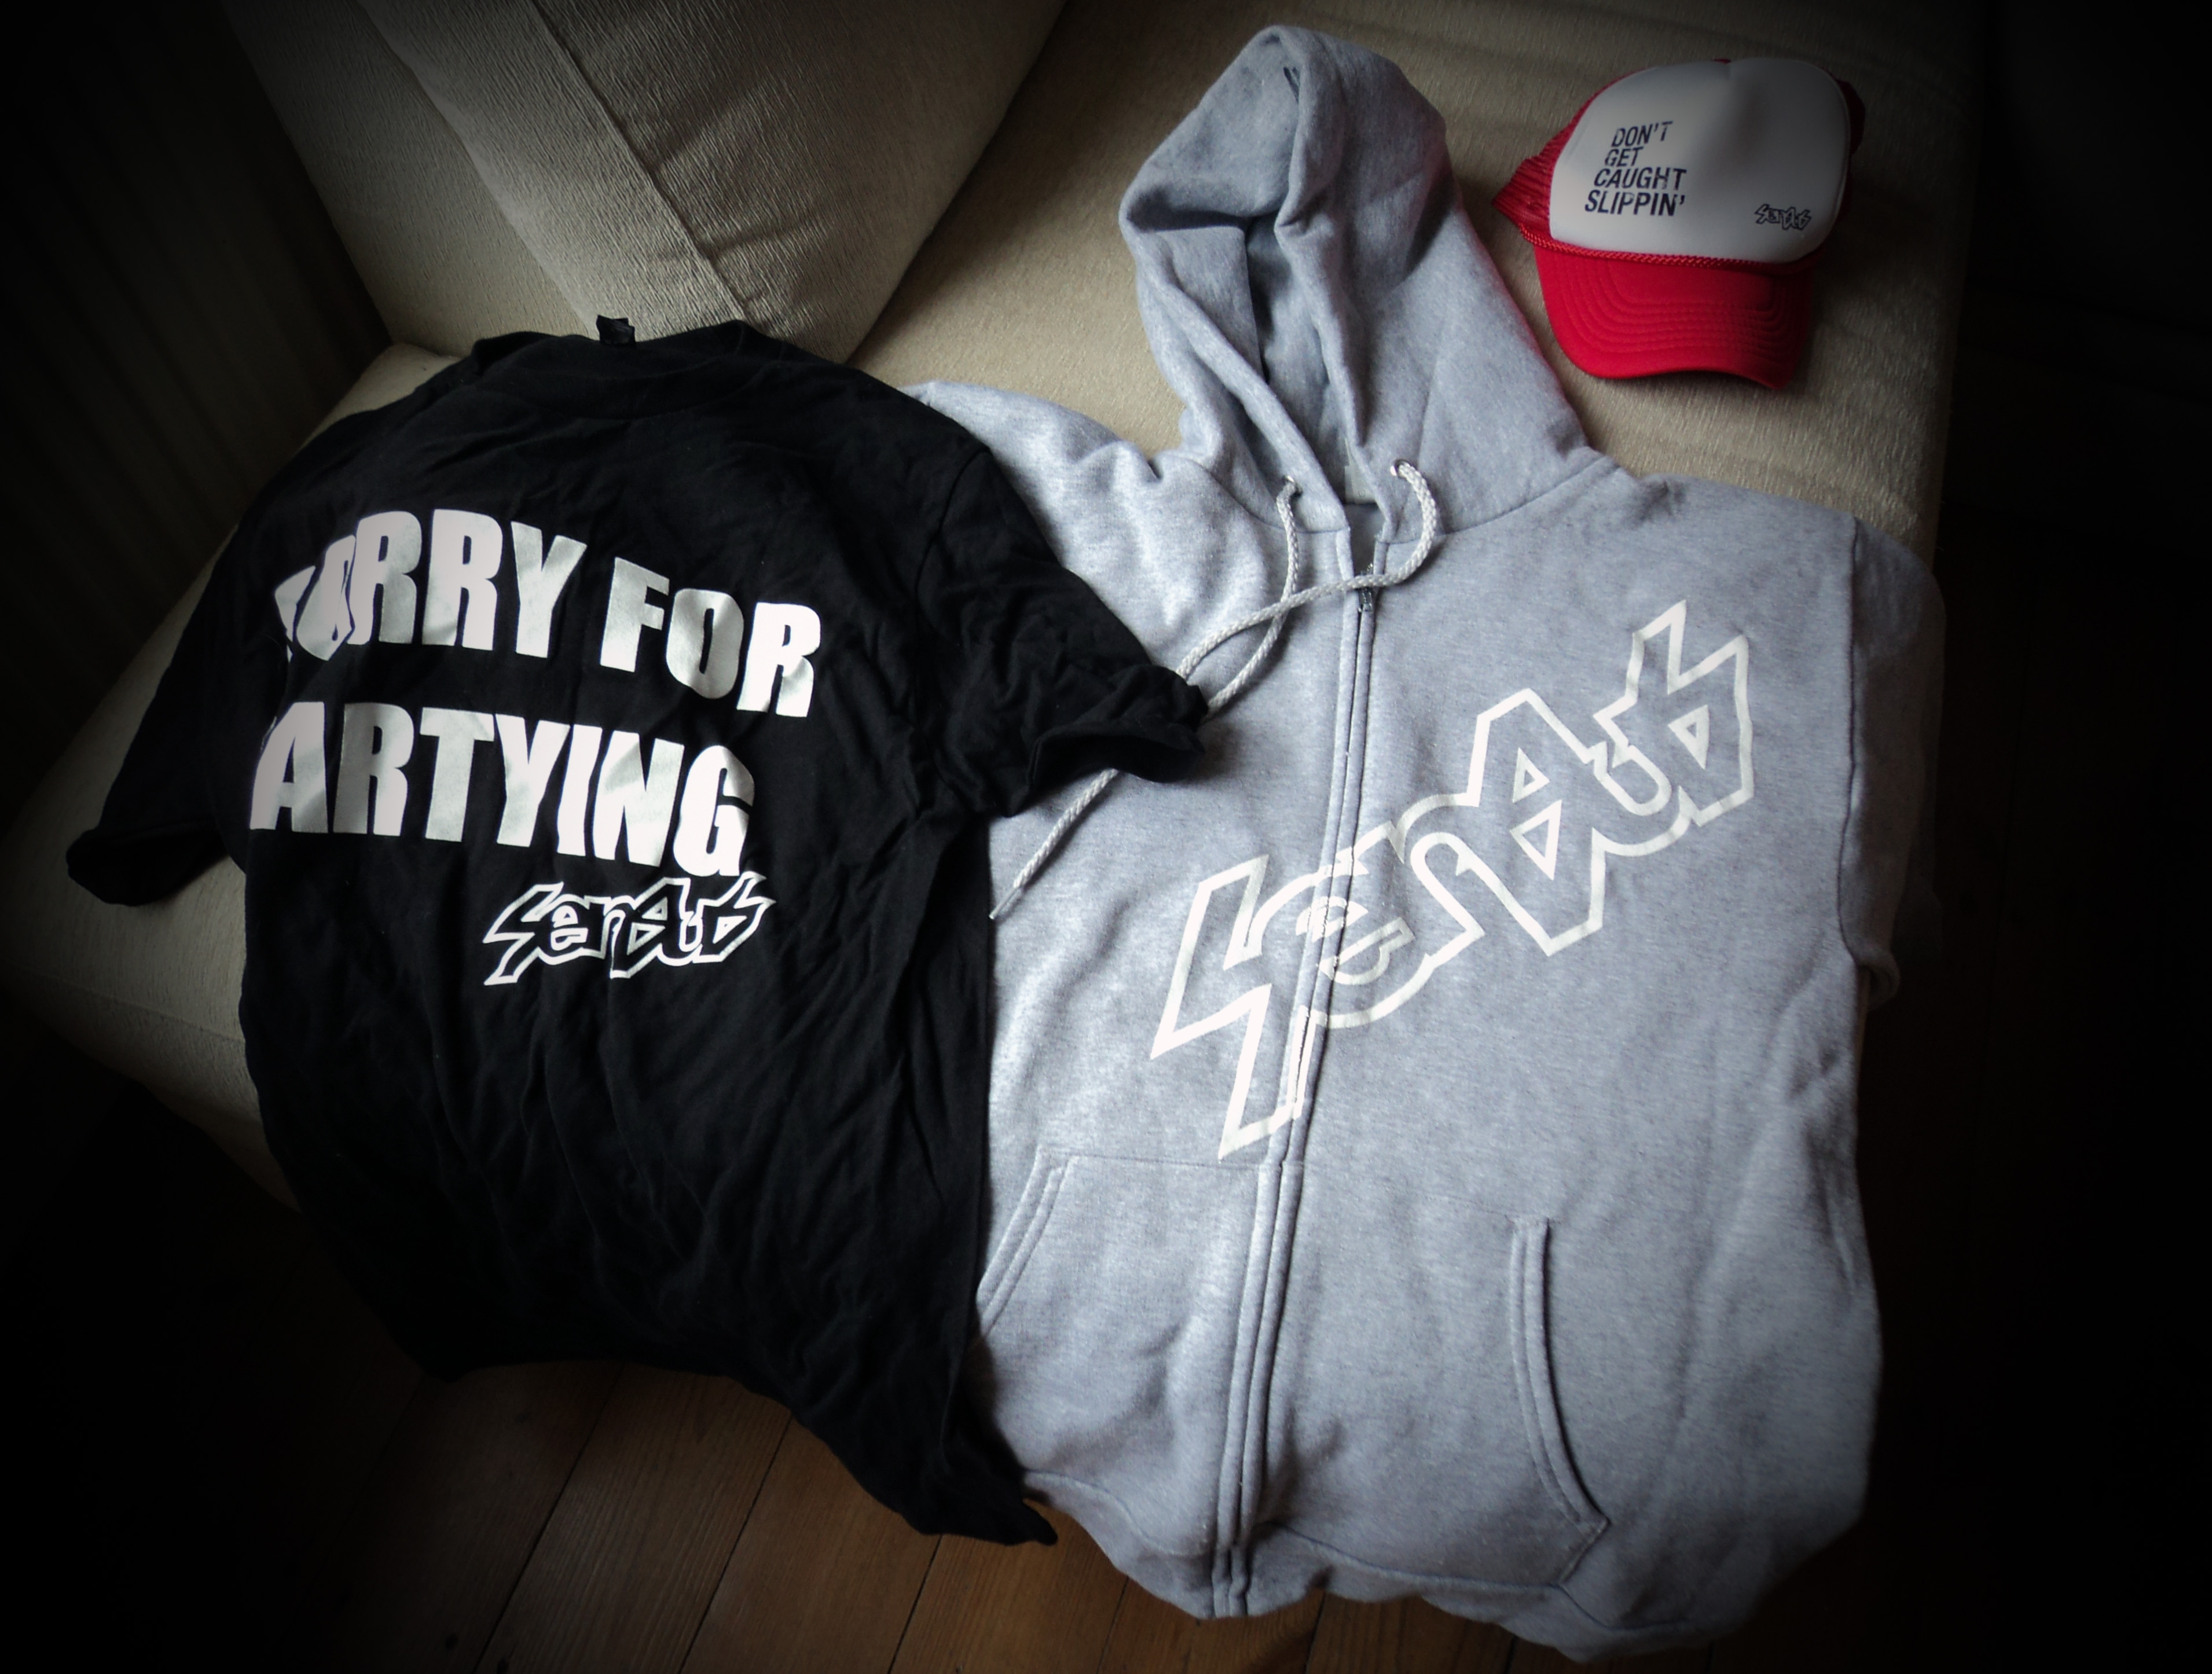 Raffle Prizes Peatys Steel City Dh T Shirt Distro Racer Claire Mccallum Won A Senus Tee Hoodie And Cap Signed By Cam Zinc Himself These Were All Donated The Generous Lads At Hook It Products Sheffields New